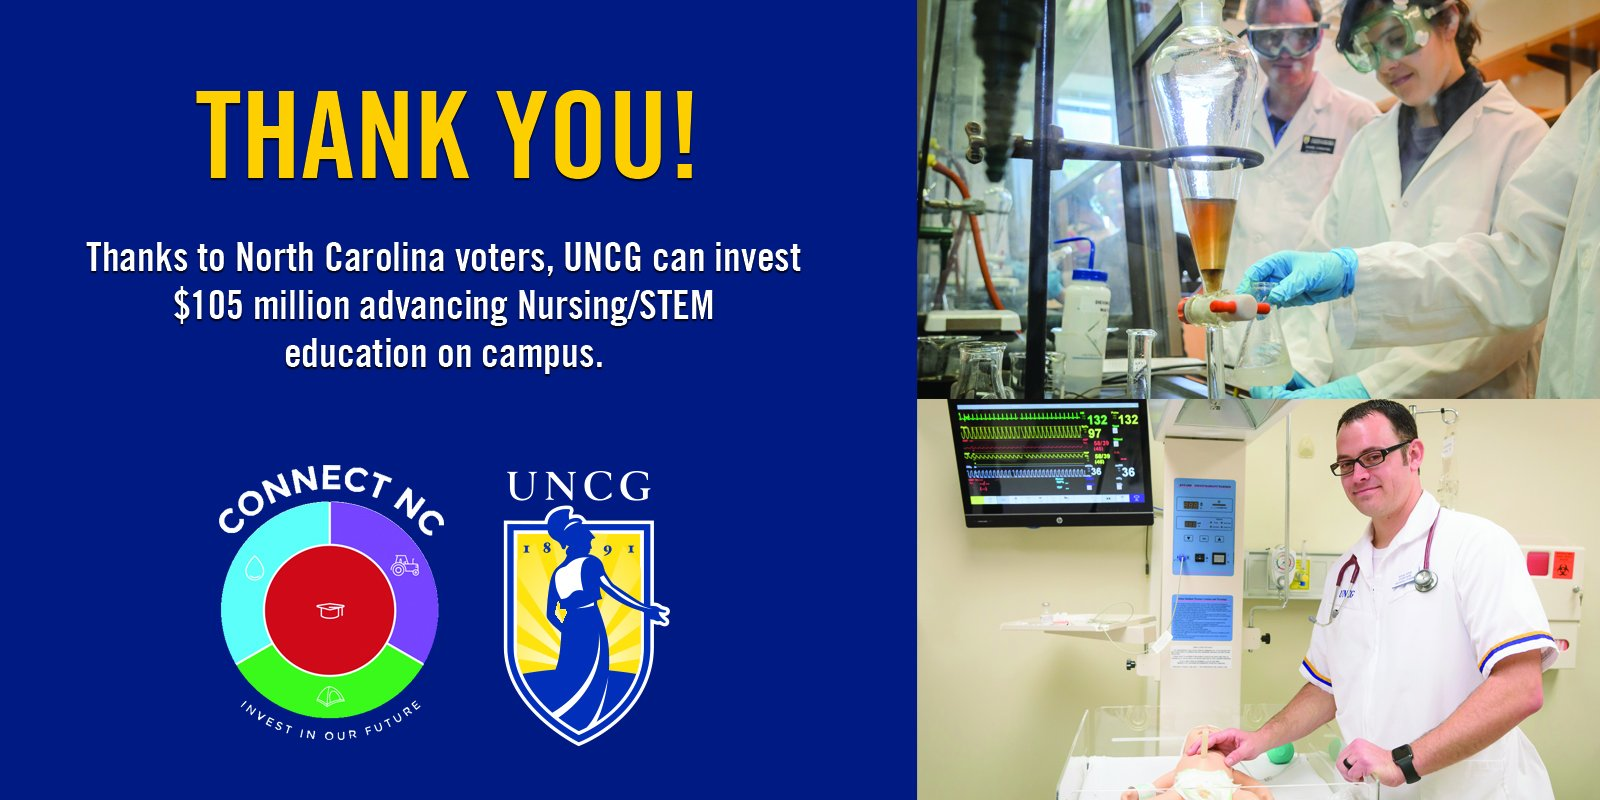 Thanks to the N.C. voters who made the #ConnectNC bond possible! Next step: Planning our new Nursing/STEM building! https://t.co/3o2u22d6oS